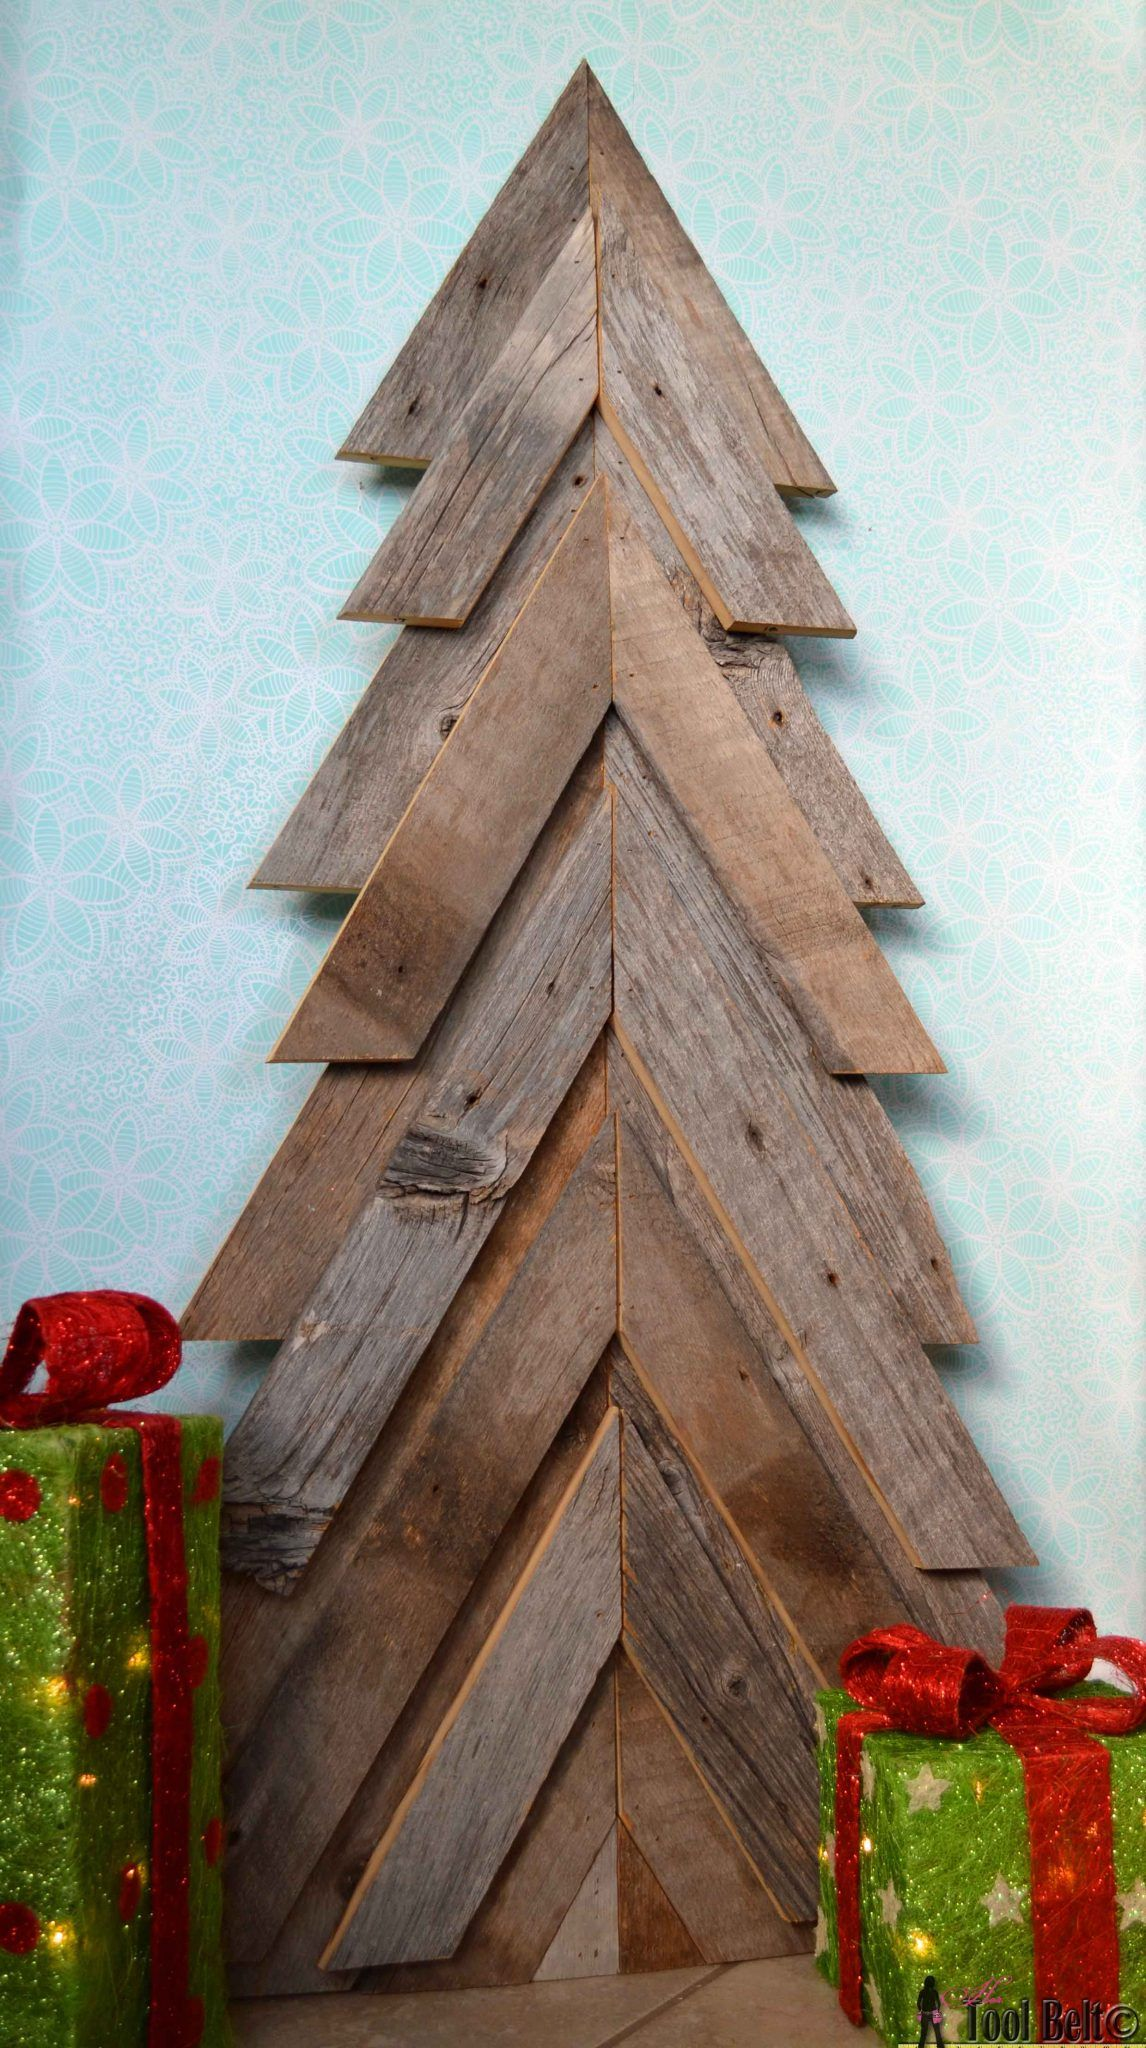 Charming DIY Decorations For A Rustic Christmas images 6